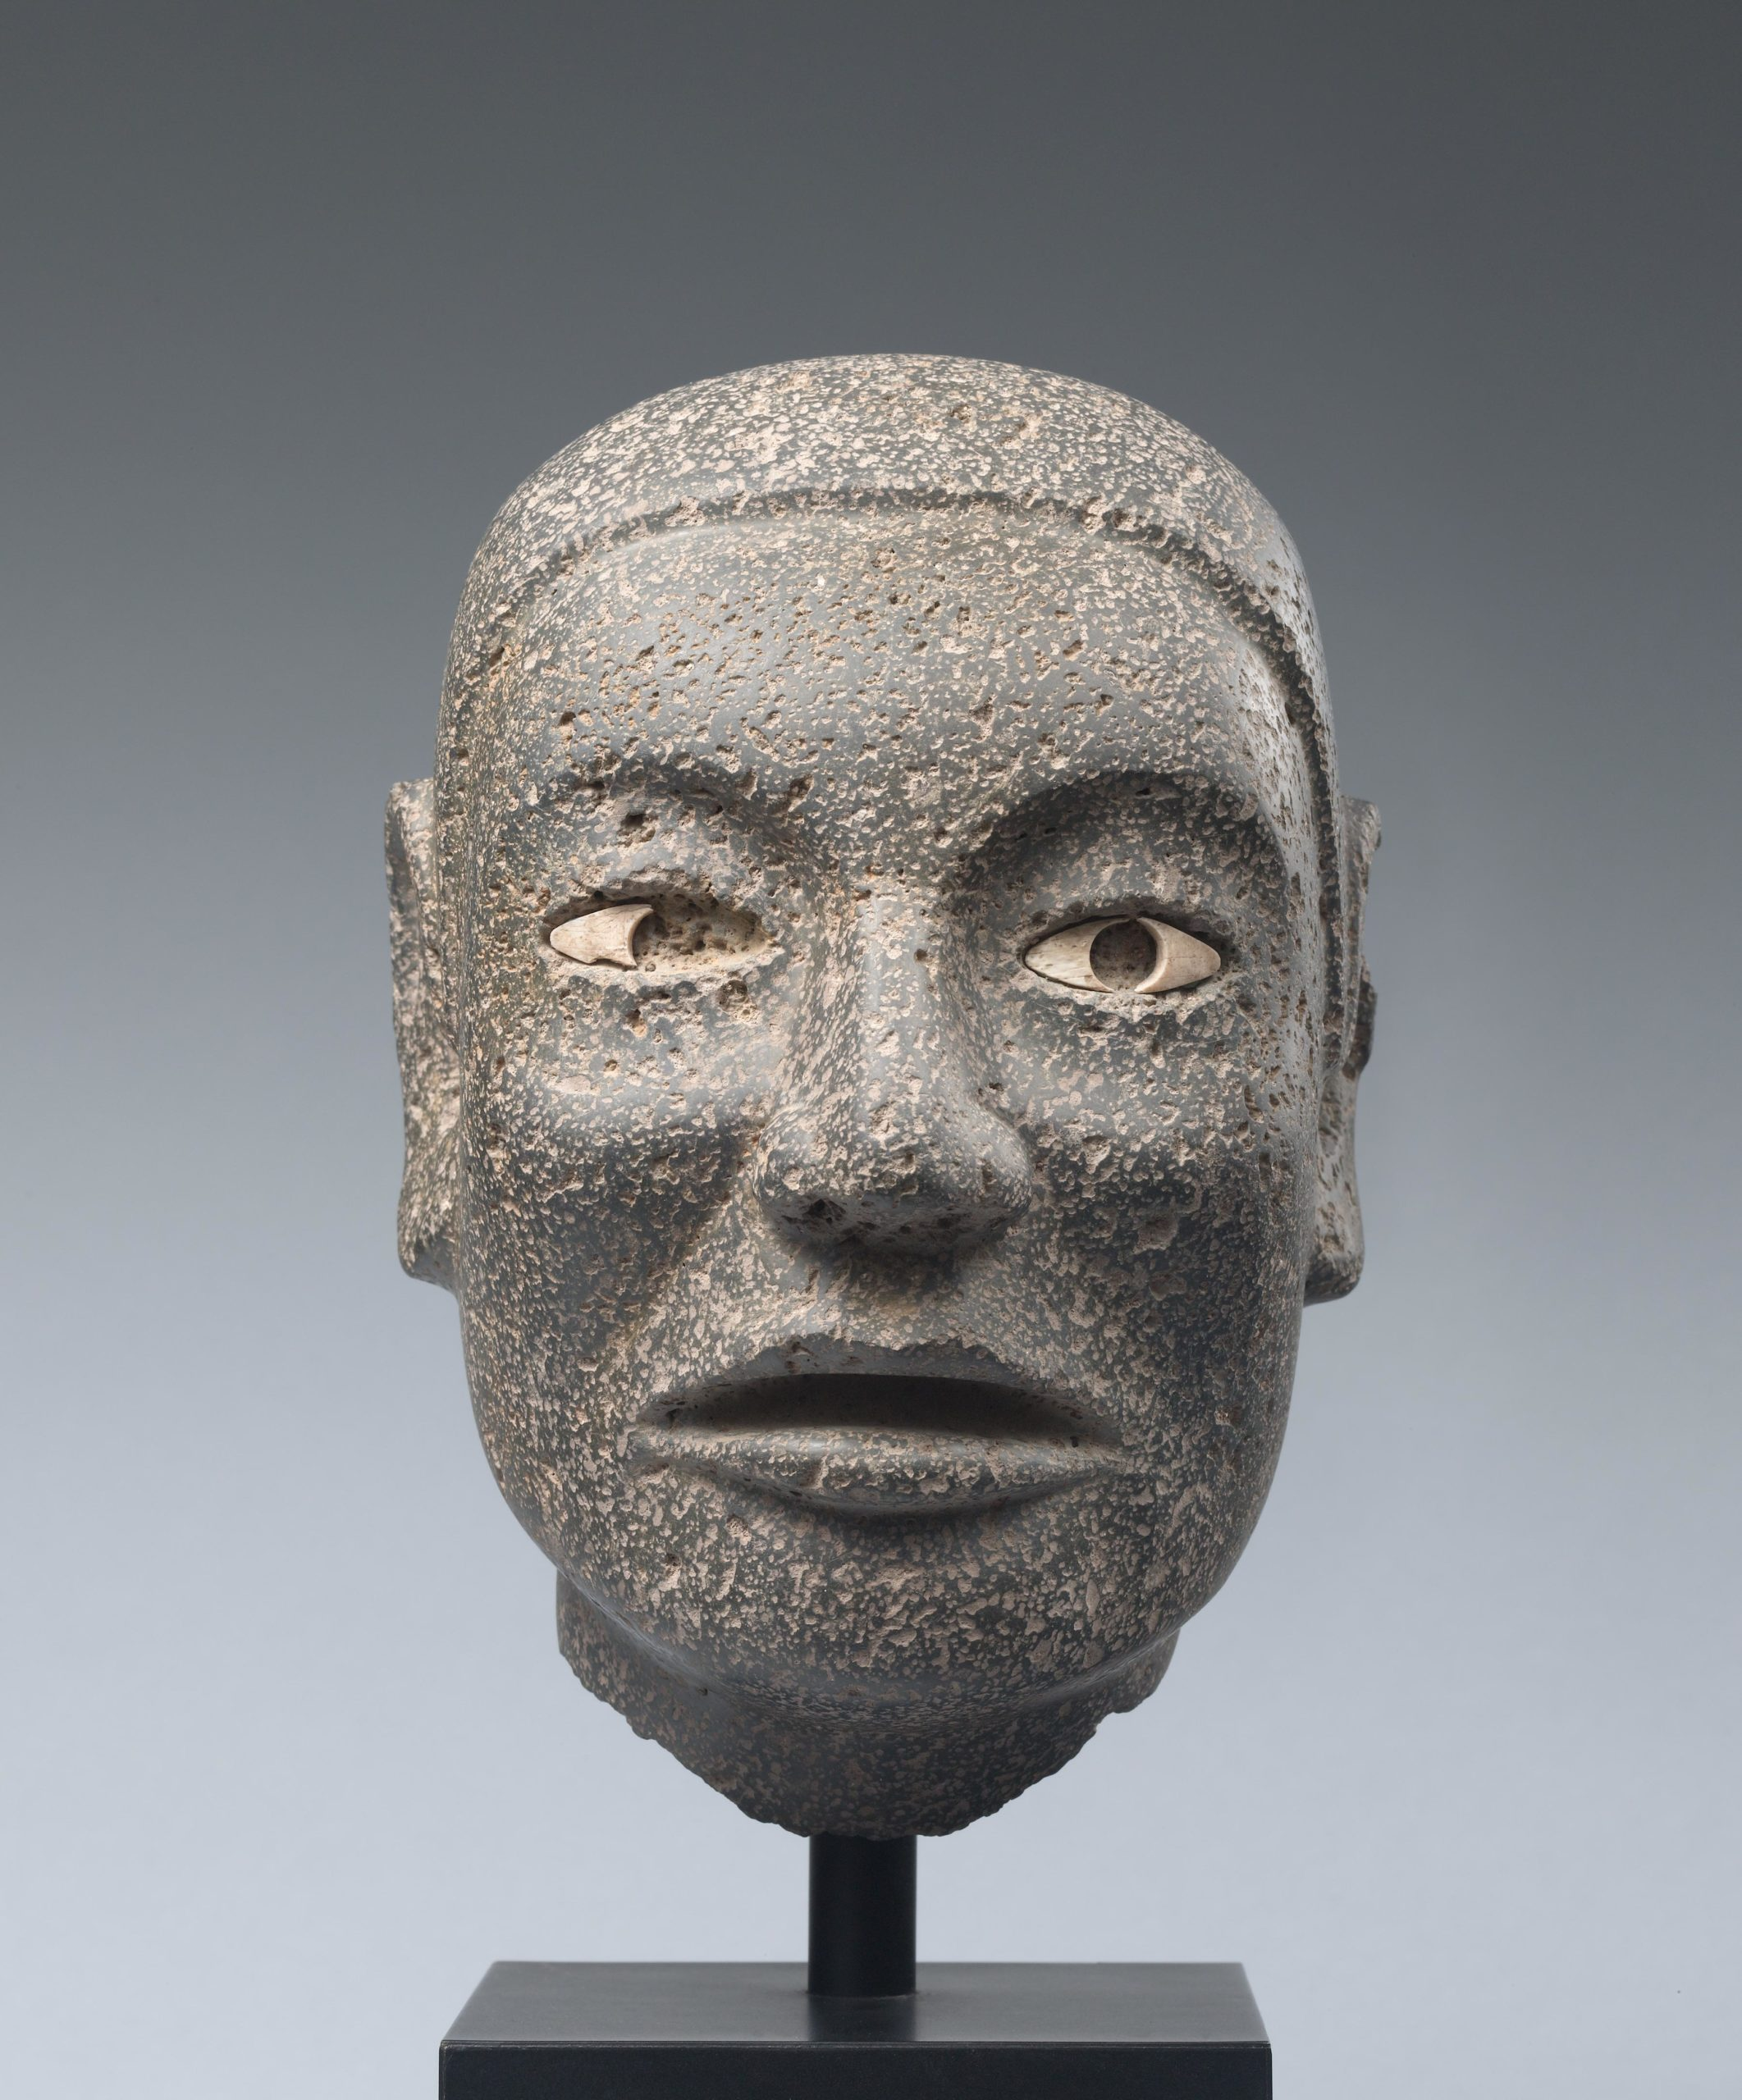 Naturalistic stone carving of a male head with ornamented inlaid eyes.